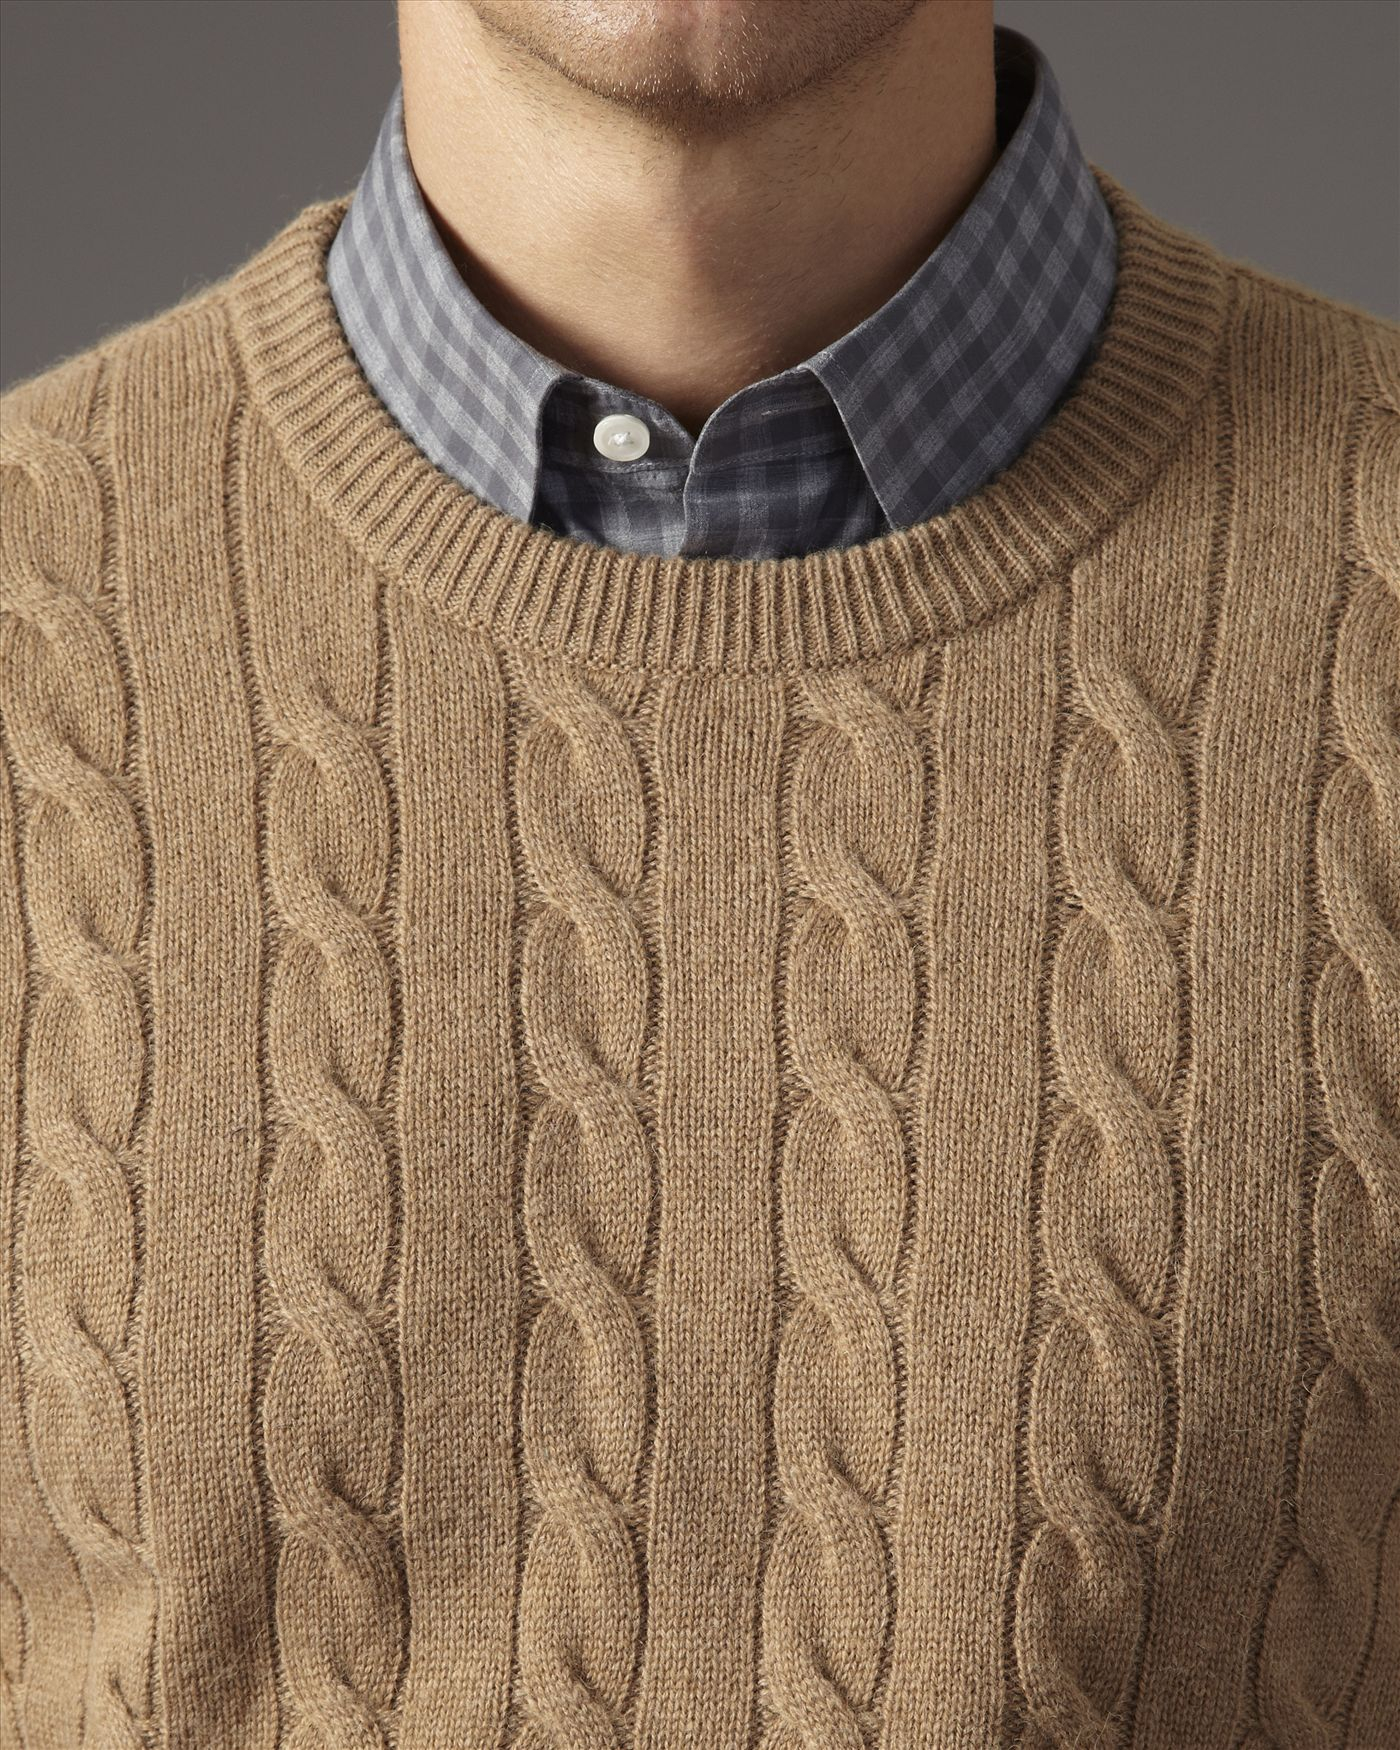 Lyst Jaeger Camel Hair Cable Knit Sweater In Natural For Men